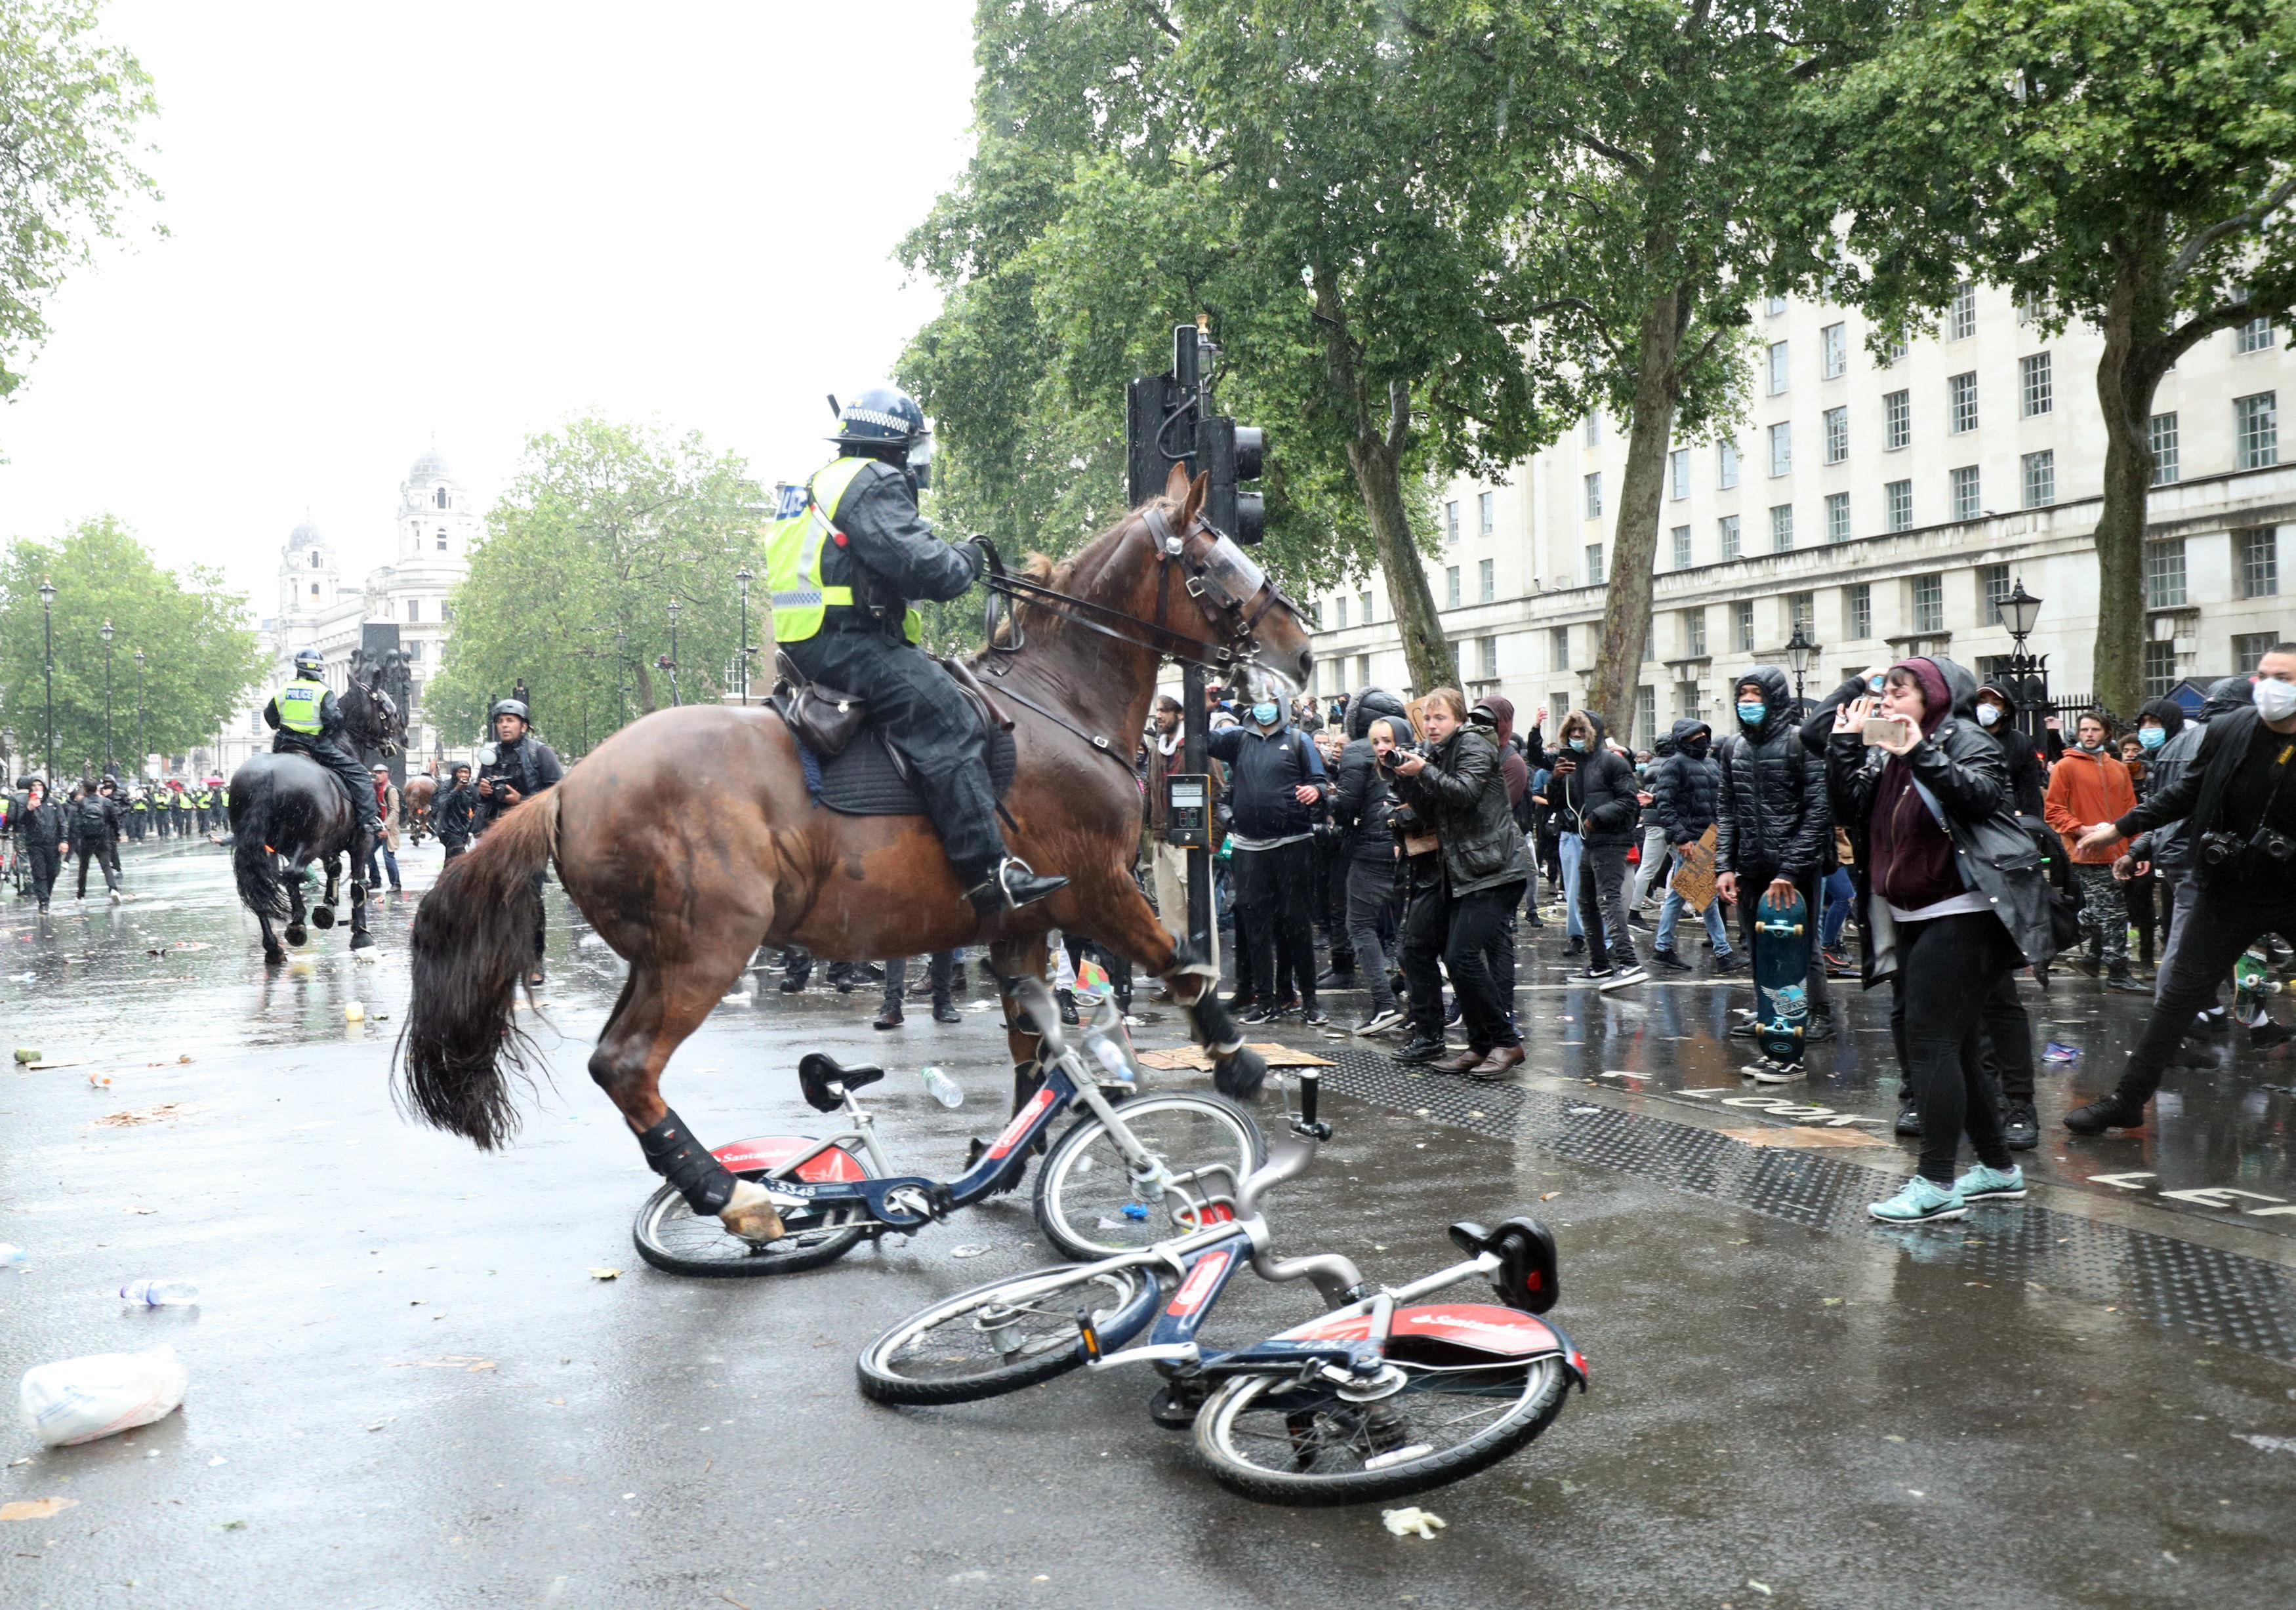 Police on horseback in Whitehall following a Black Lives Matter protest rally in Parliament Square, London, in memory of George Floyd who was killed on May 25 while in police custody in the US city of Minneapolis. PA Photo. Picture date: Saturday June 6, 2020. See PA story POLICE Floyd. Photo credit should read: Yui Mok/PA Wire